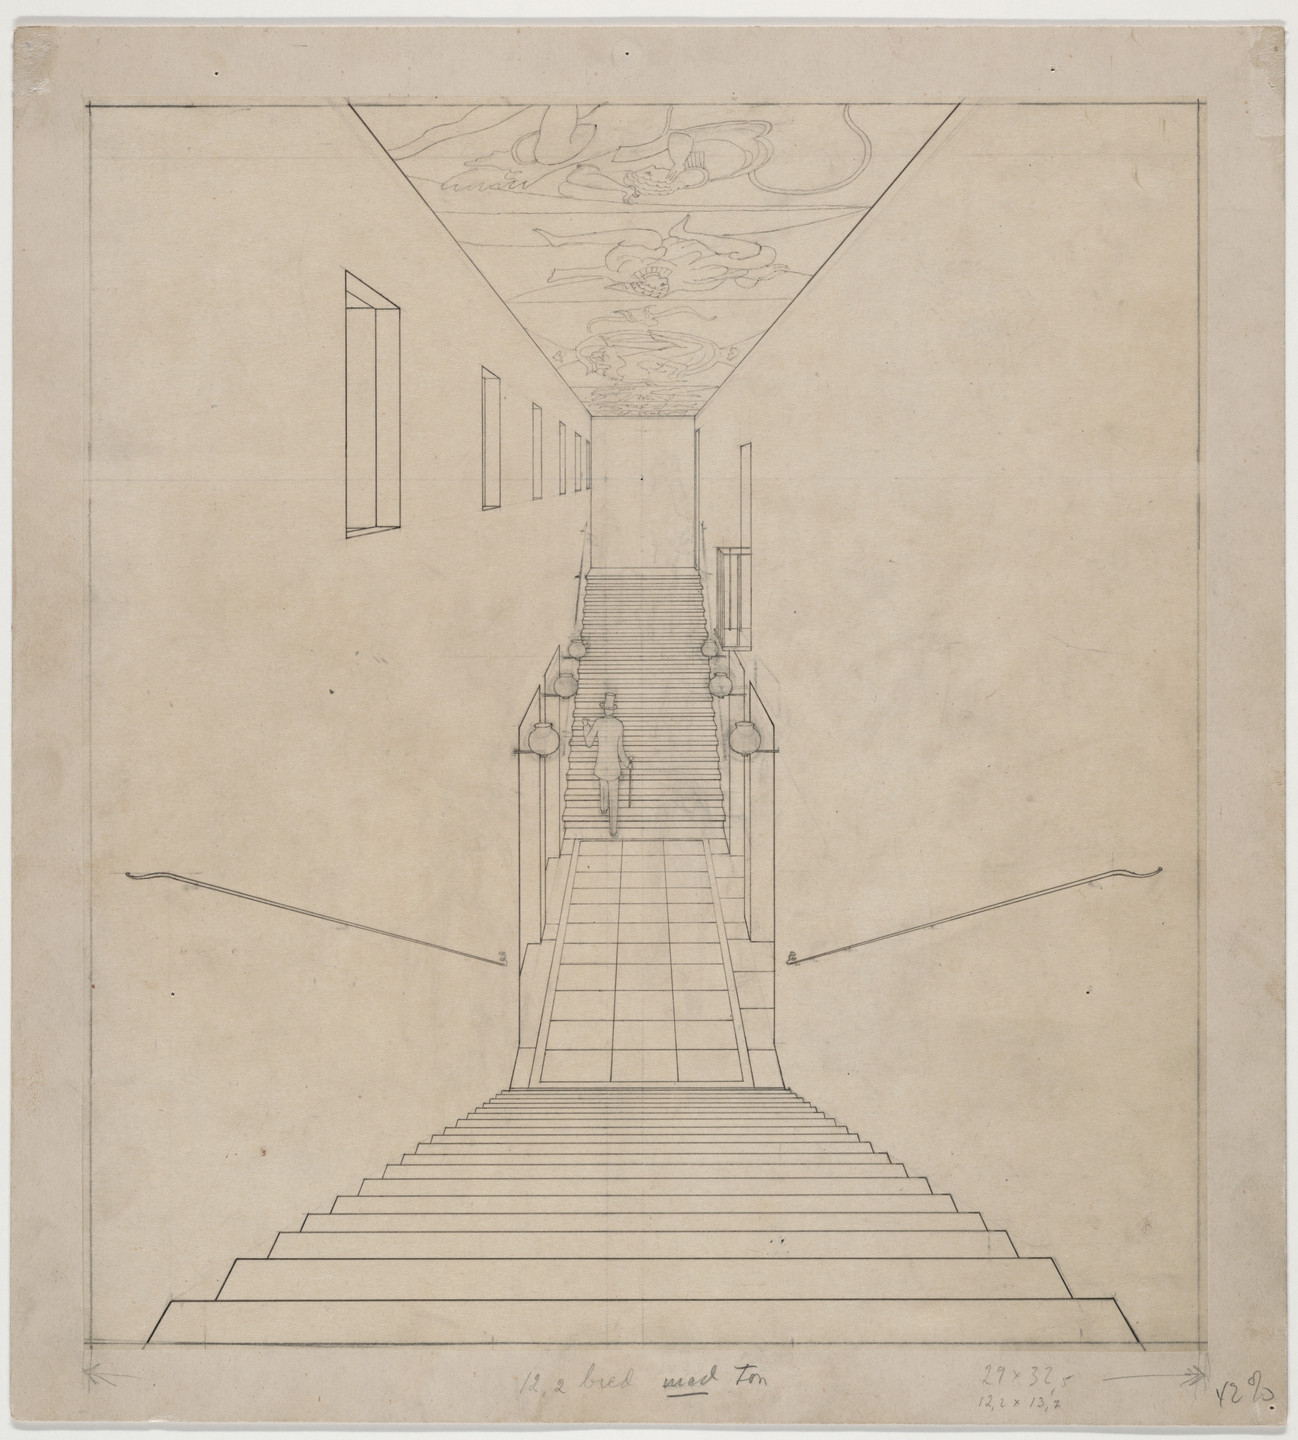 Erik Gunnar Asplund. Skandia Cinema, Stockholm, Sweden, Perspective of staircase. Unknown